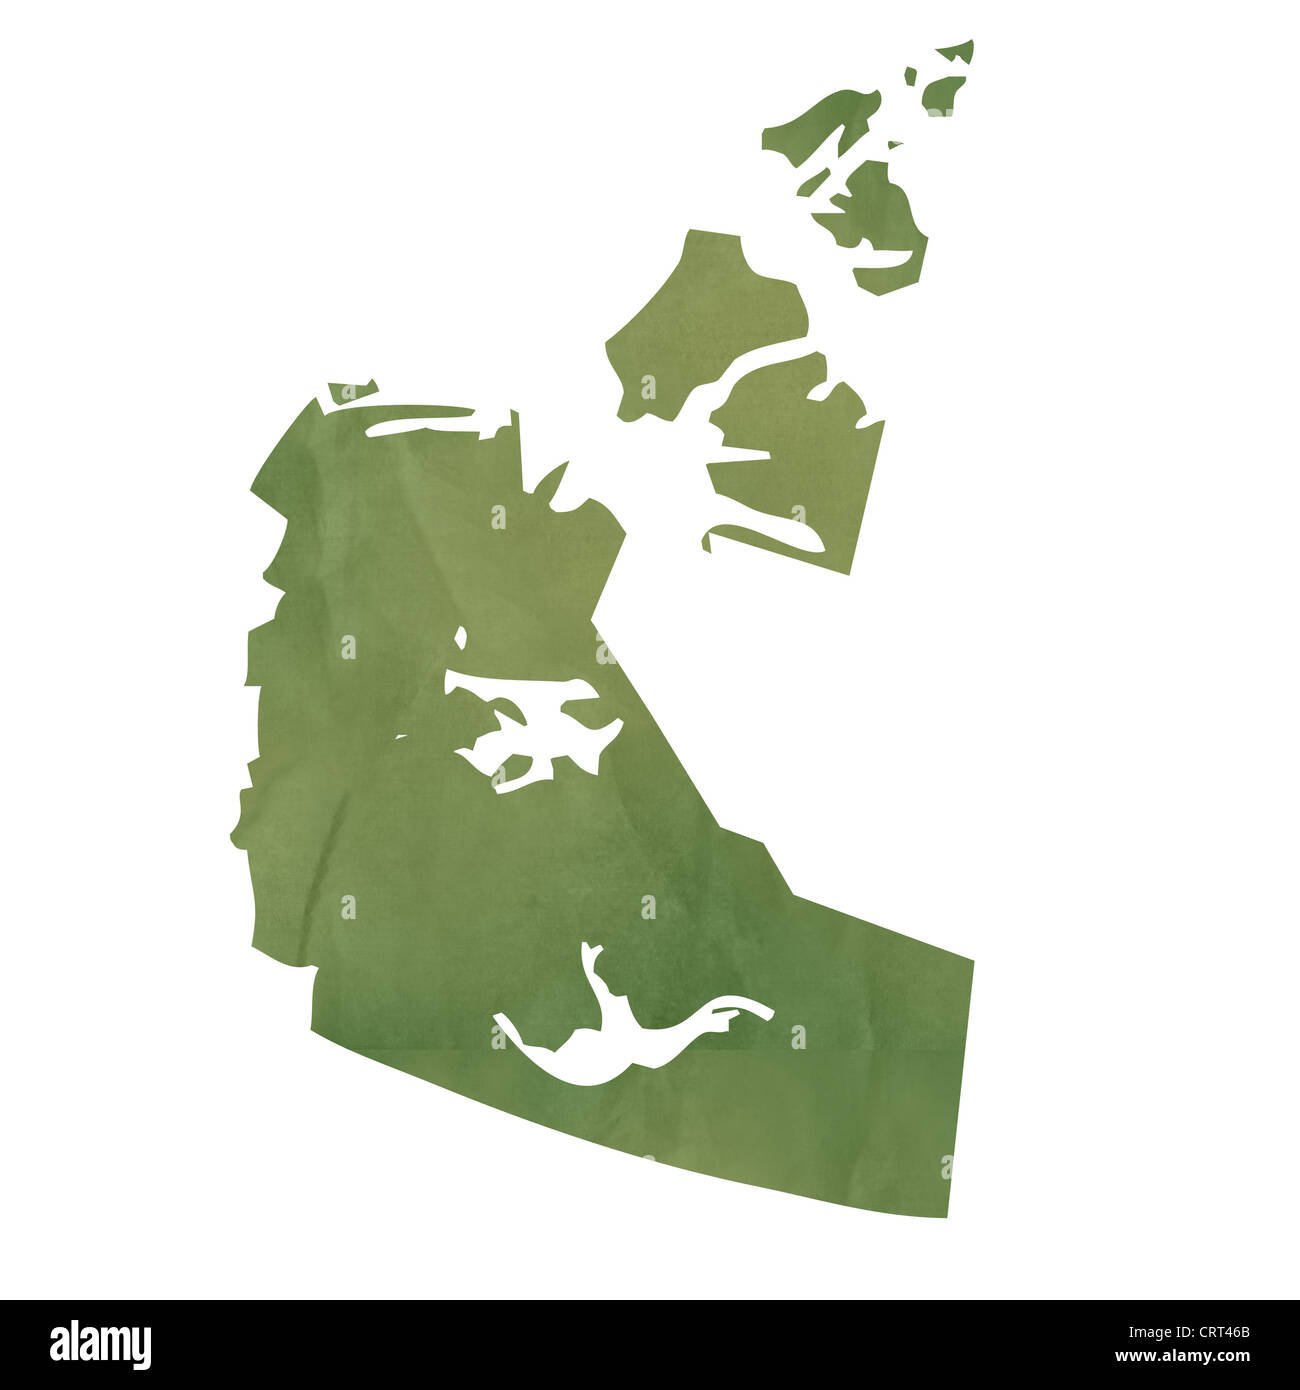 northwest territories province of canada map in old green paper isolated on white background